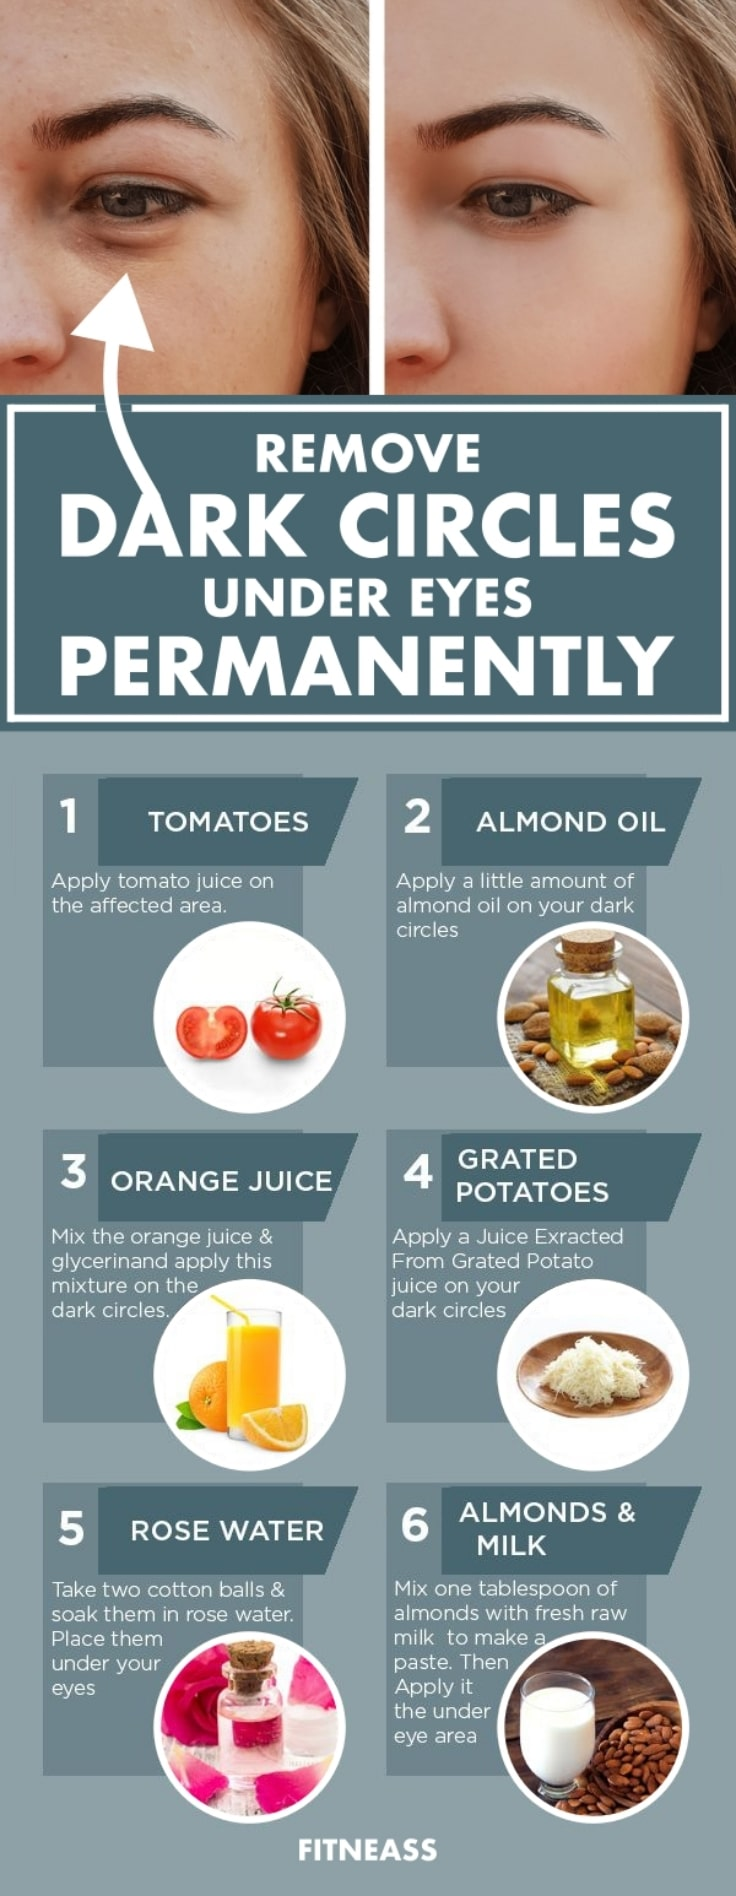 Remove Dark Circles Under Eyes Permanently